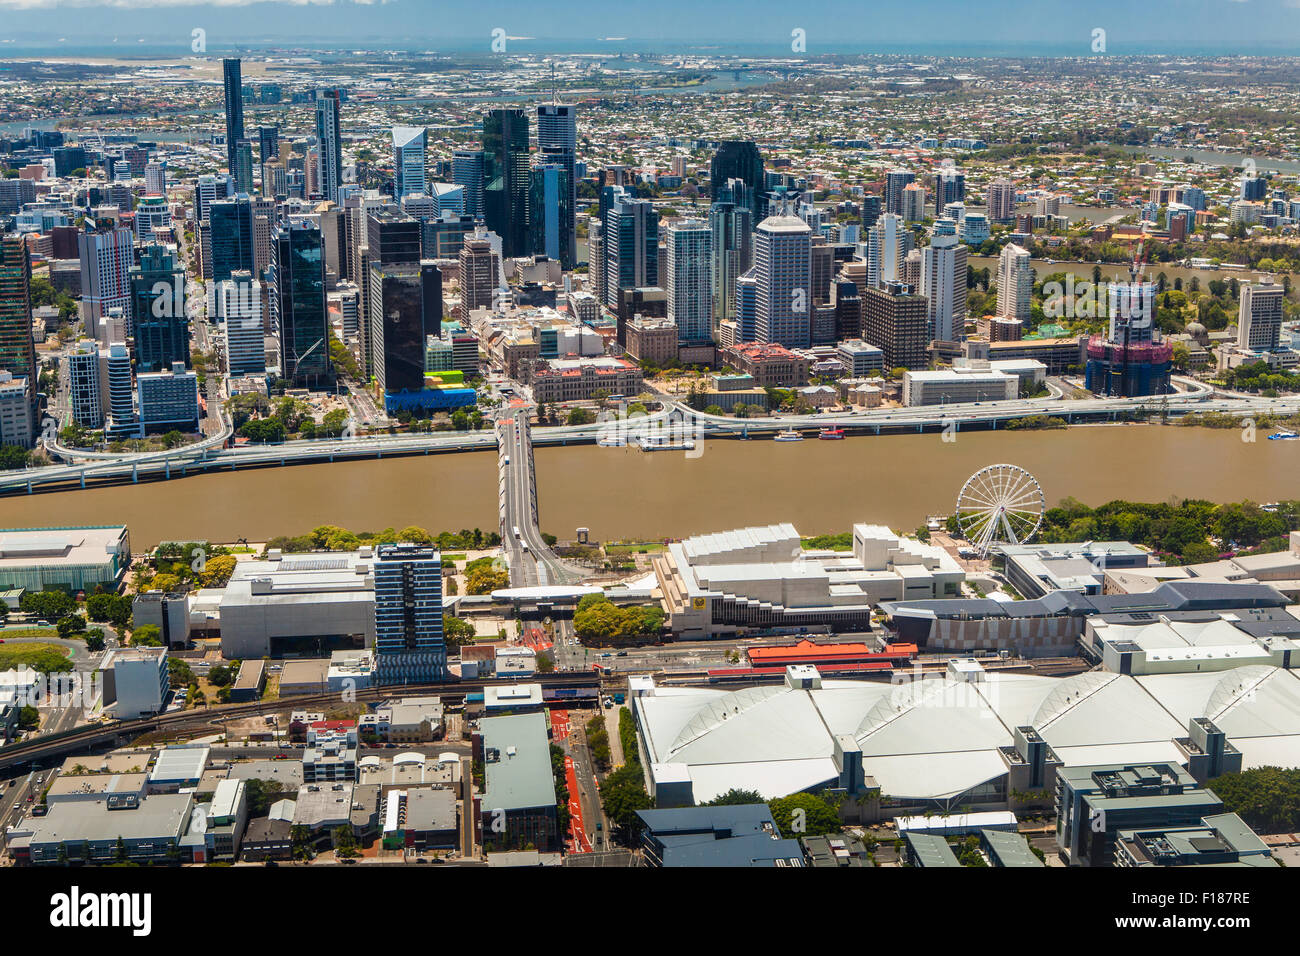 BRISBANE, AUSTRALIA - NOVEMBER 11 2014: View of Brisbane from air over the river. Brisbane is the capital of QLD - Stock Image